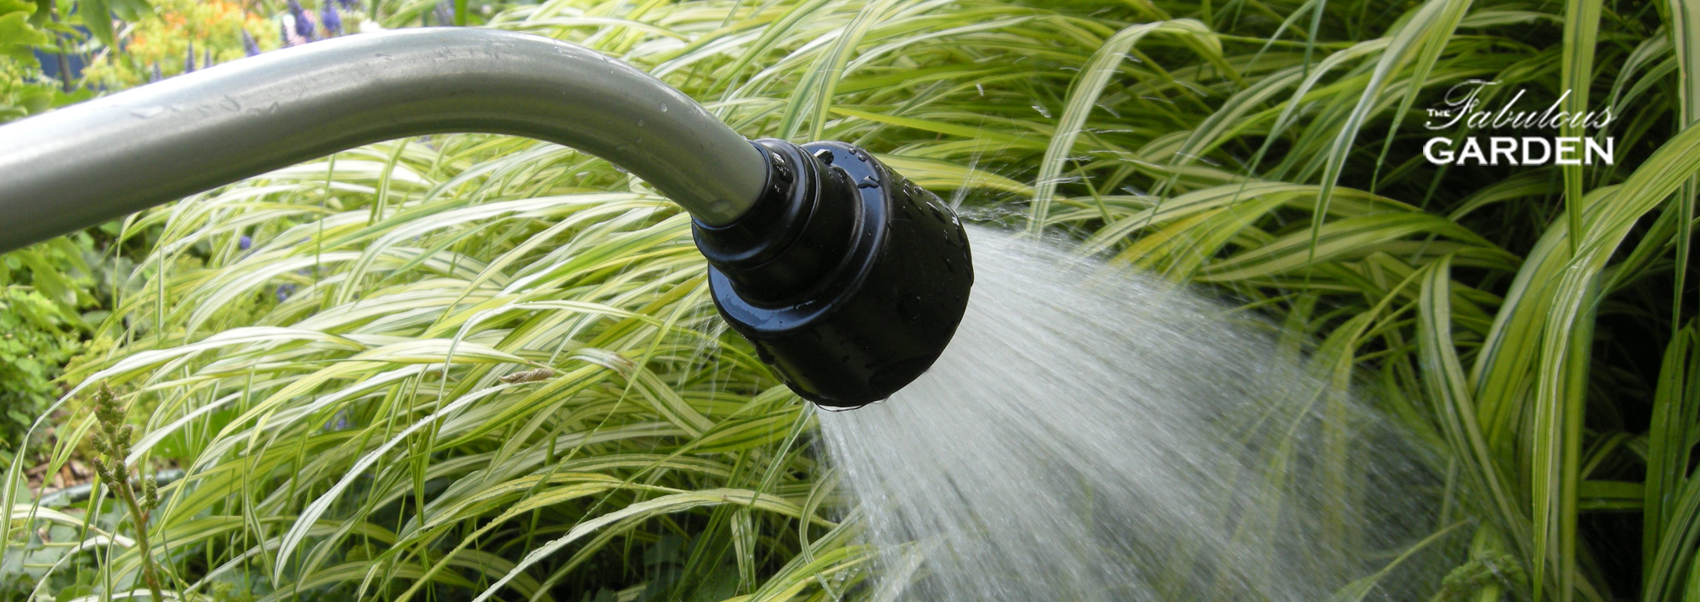 5 Rules for Watering Your Garden